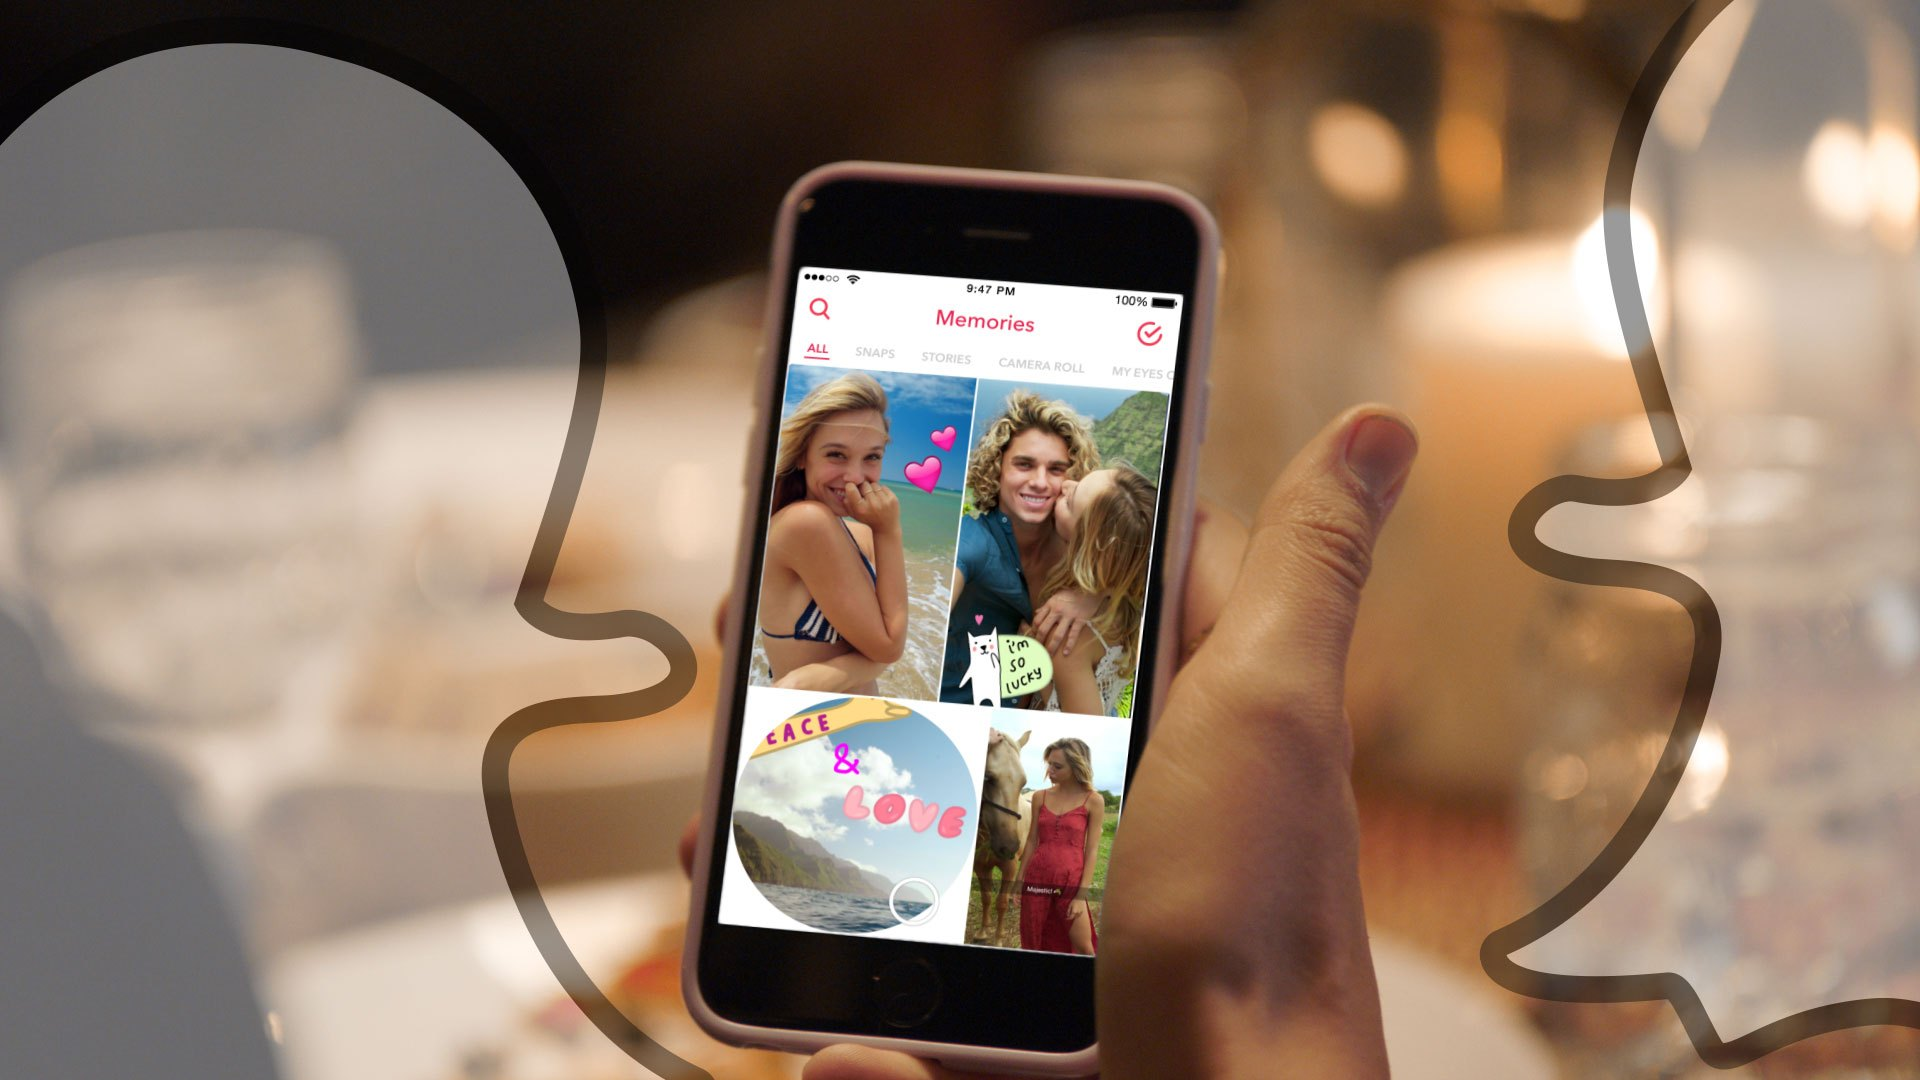 Snapchat: The App to Share Moments, Play Games, and Track People